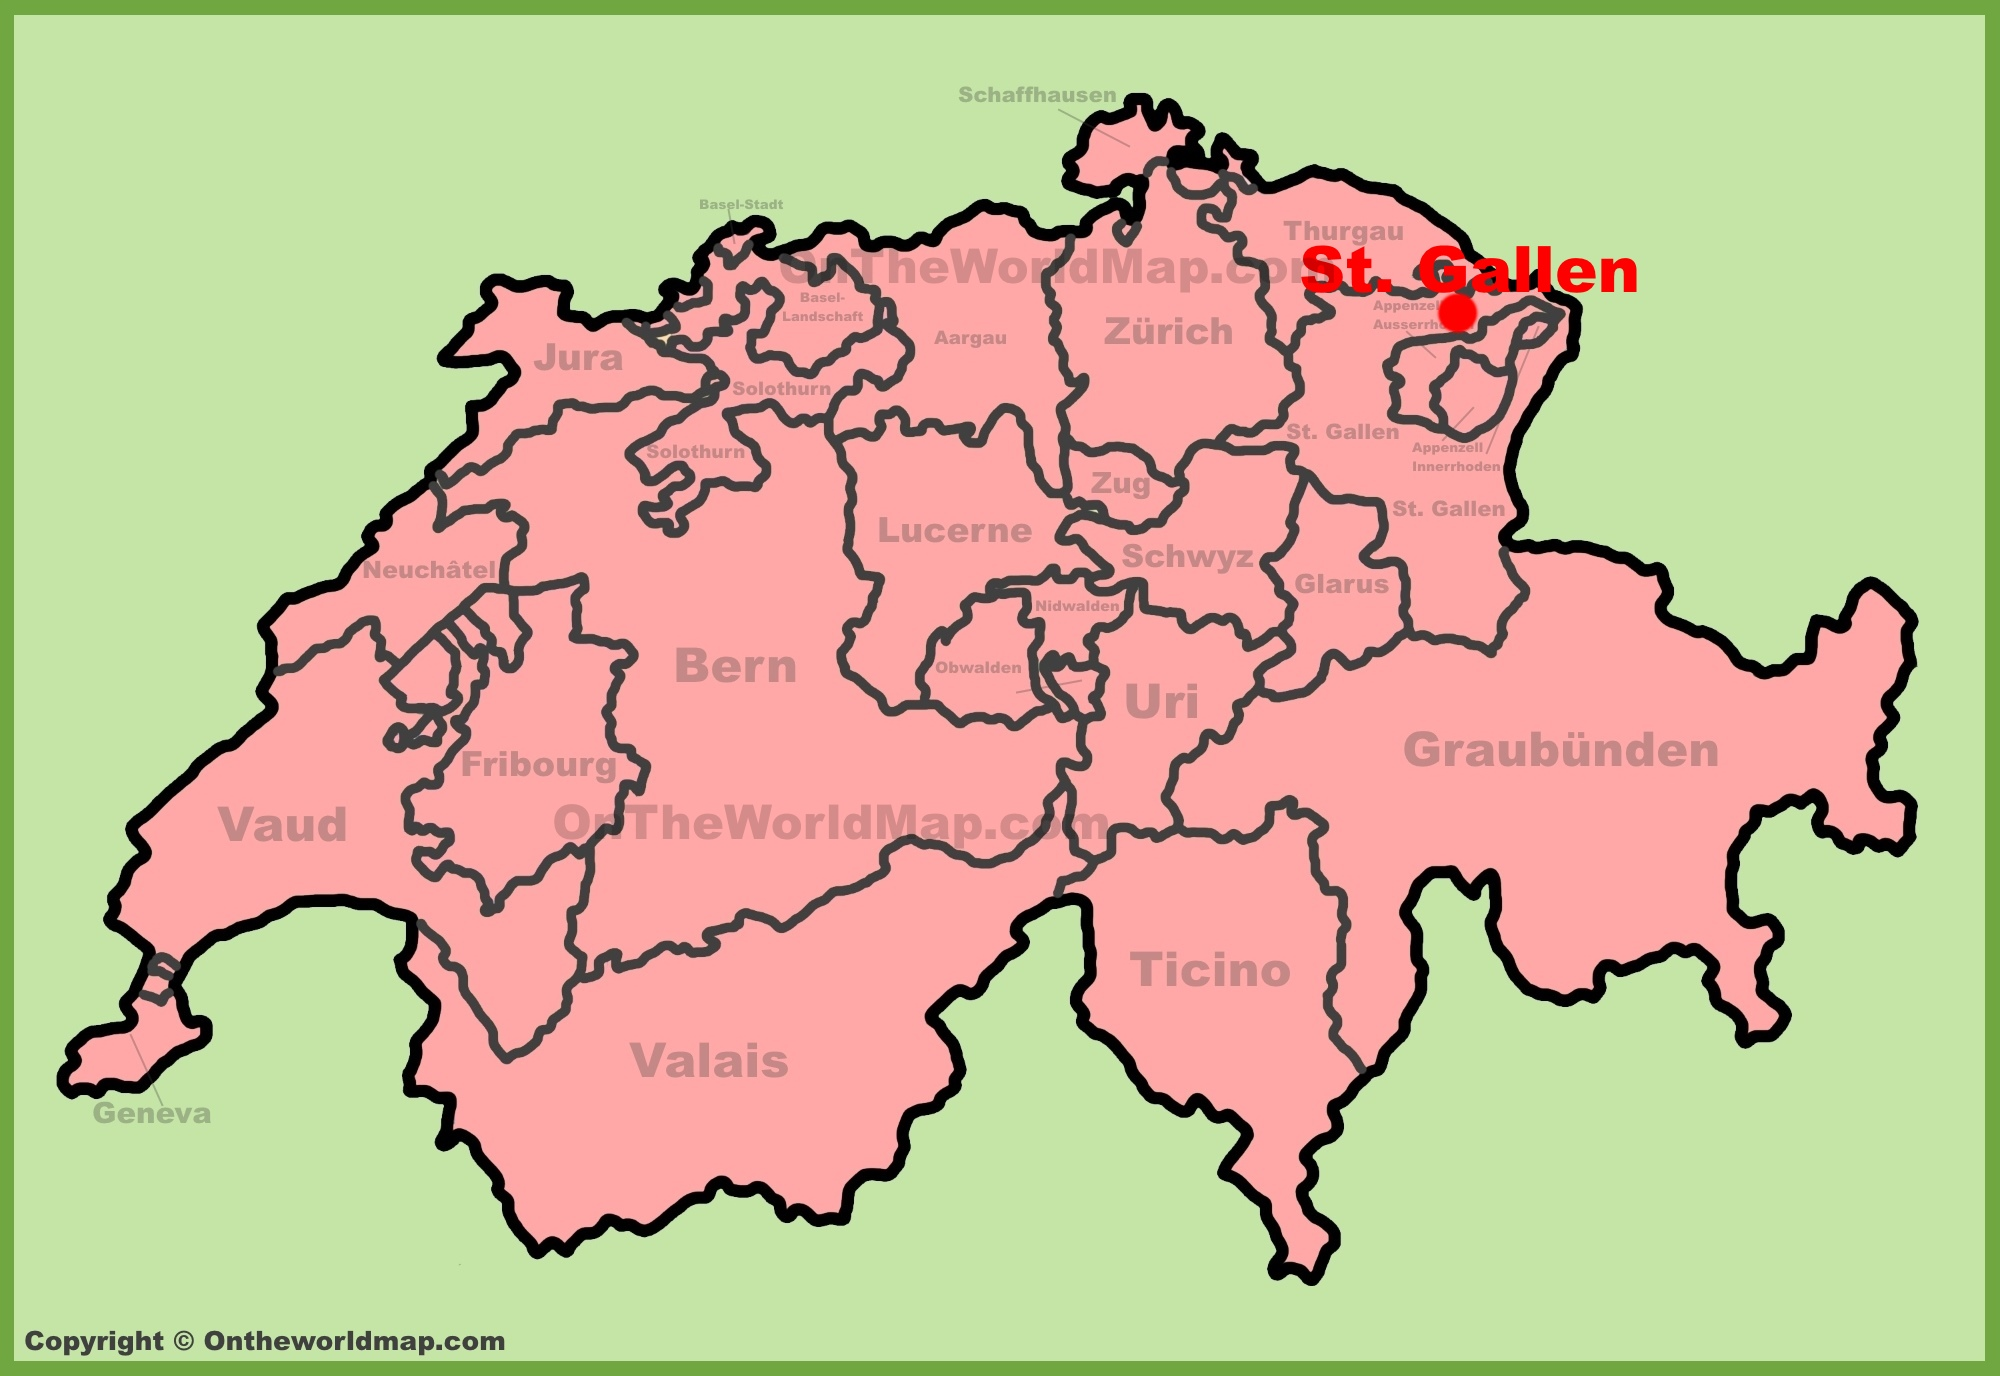 St Gallen location on the Switzerland map